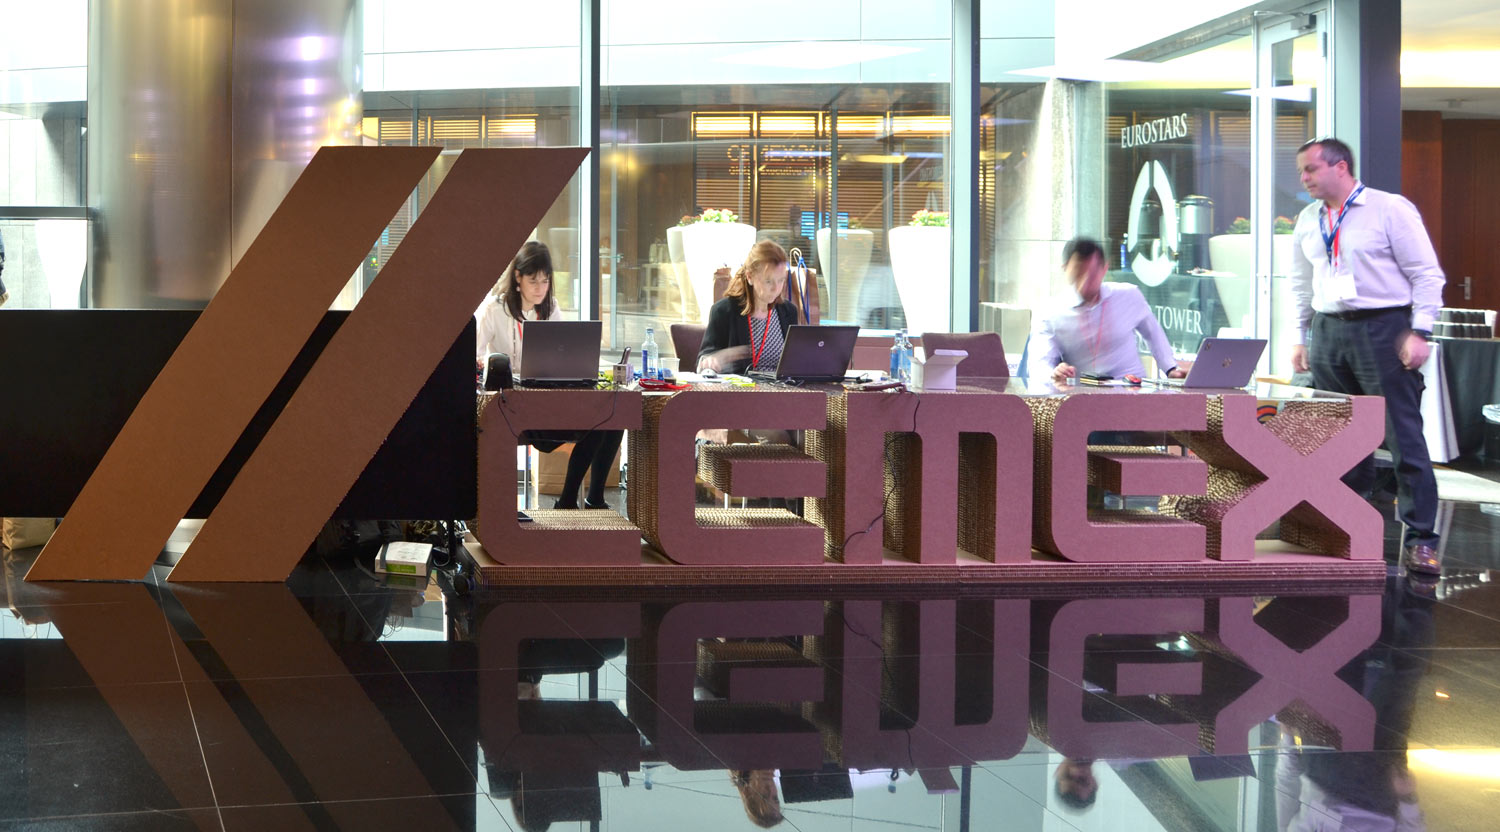 mesa-letras-carton-evento-cartonlab